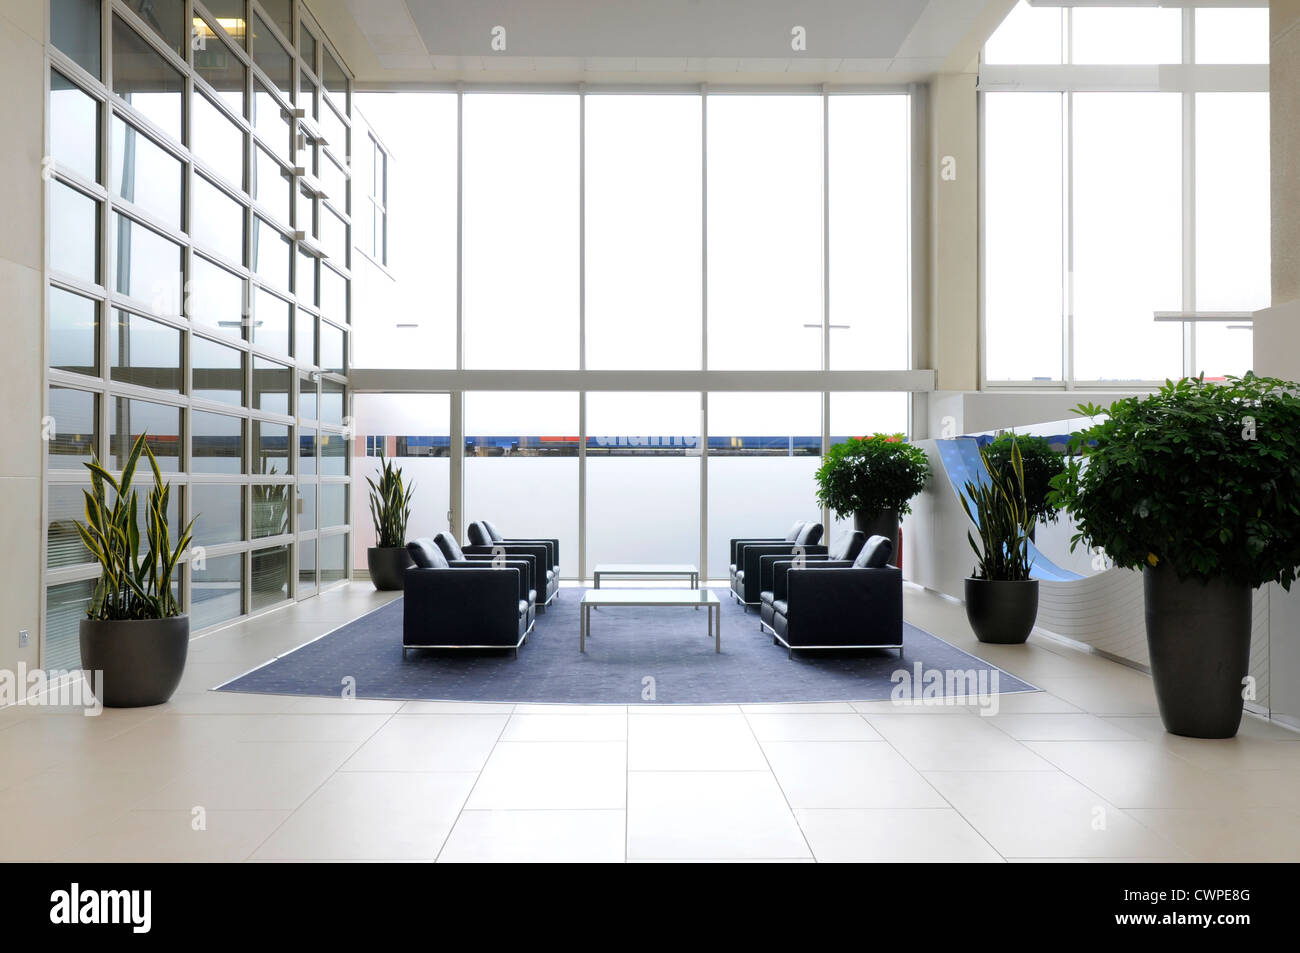 Stock Photo   The Interior Of A Large Office Reception With Seating Plants  And Large Smoked Glass Windows